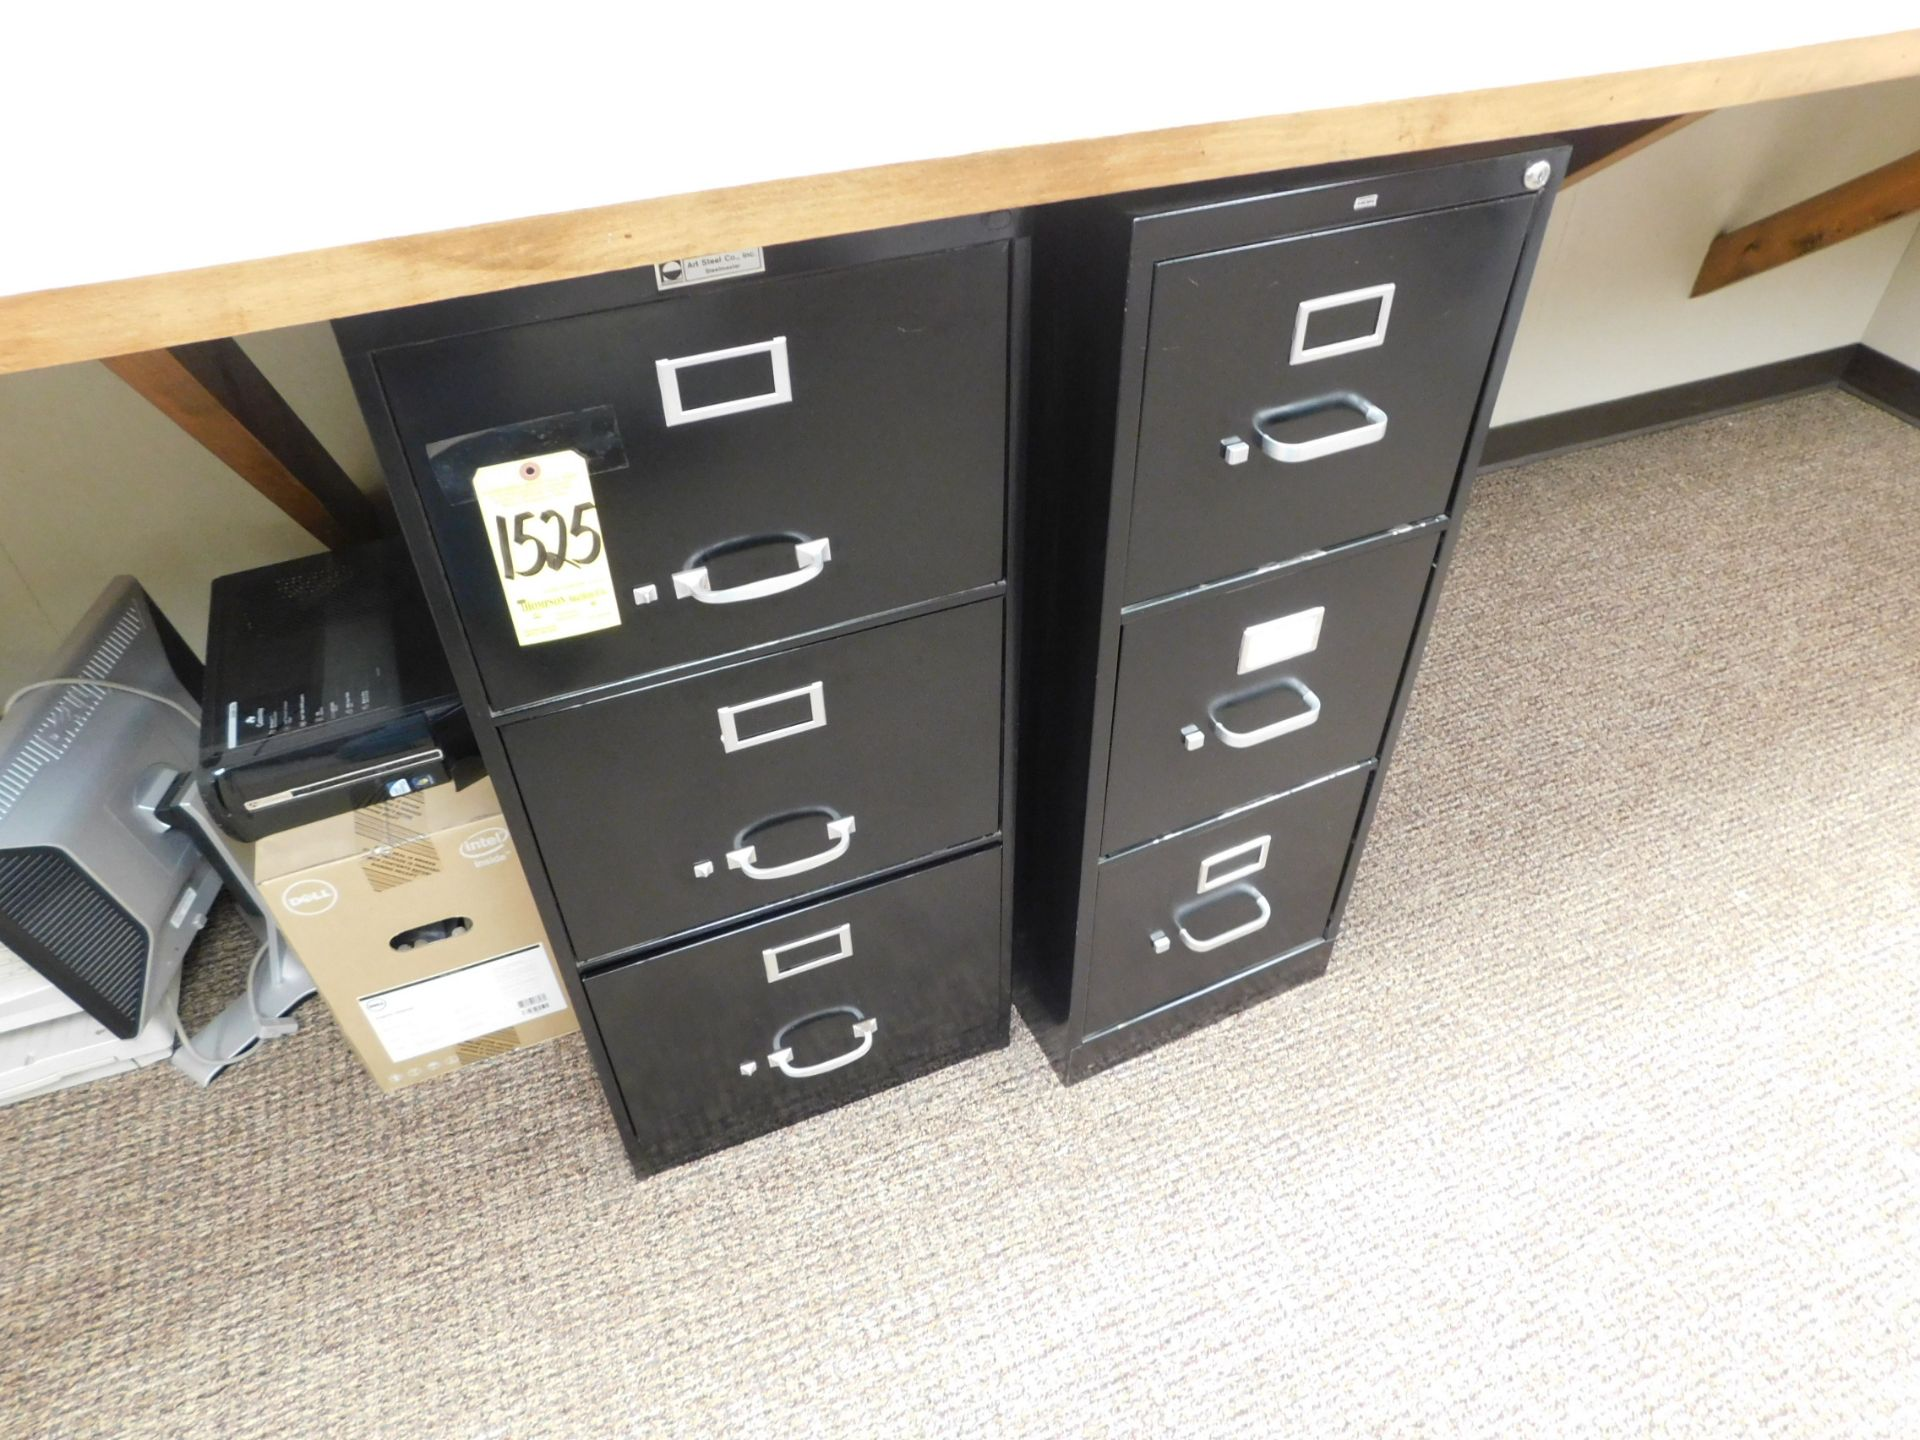 Lot 1525 - (2) 3-Drawer File Cabinets, Monitor, Printer, Fax Machine, Paper Cutter, Hole Punch, and Brother